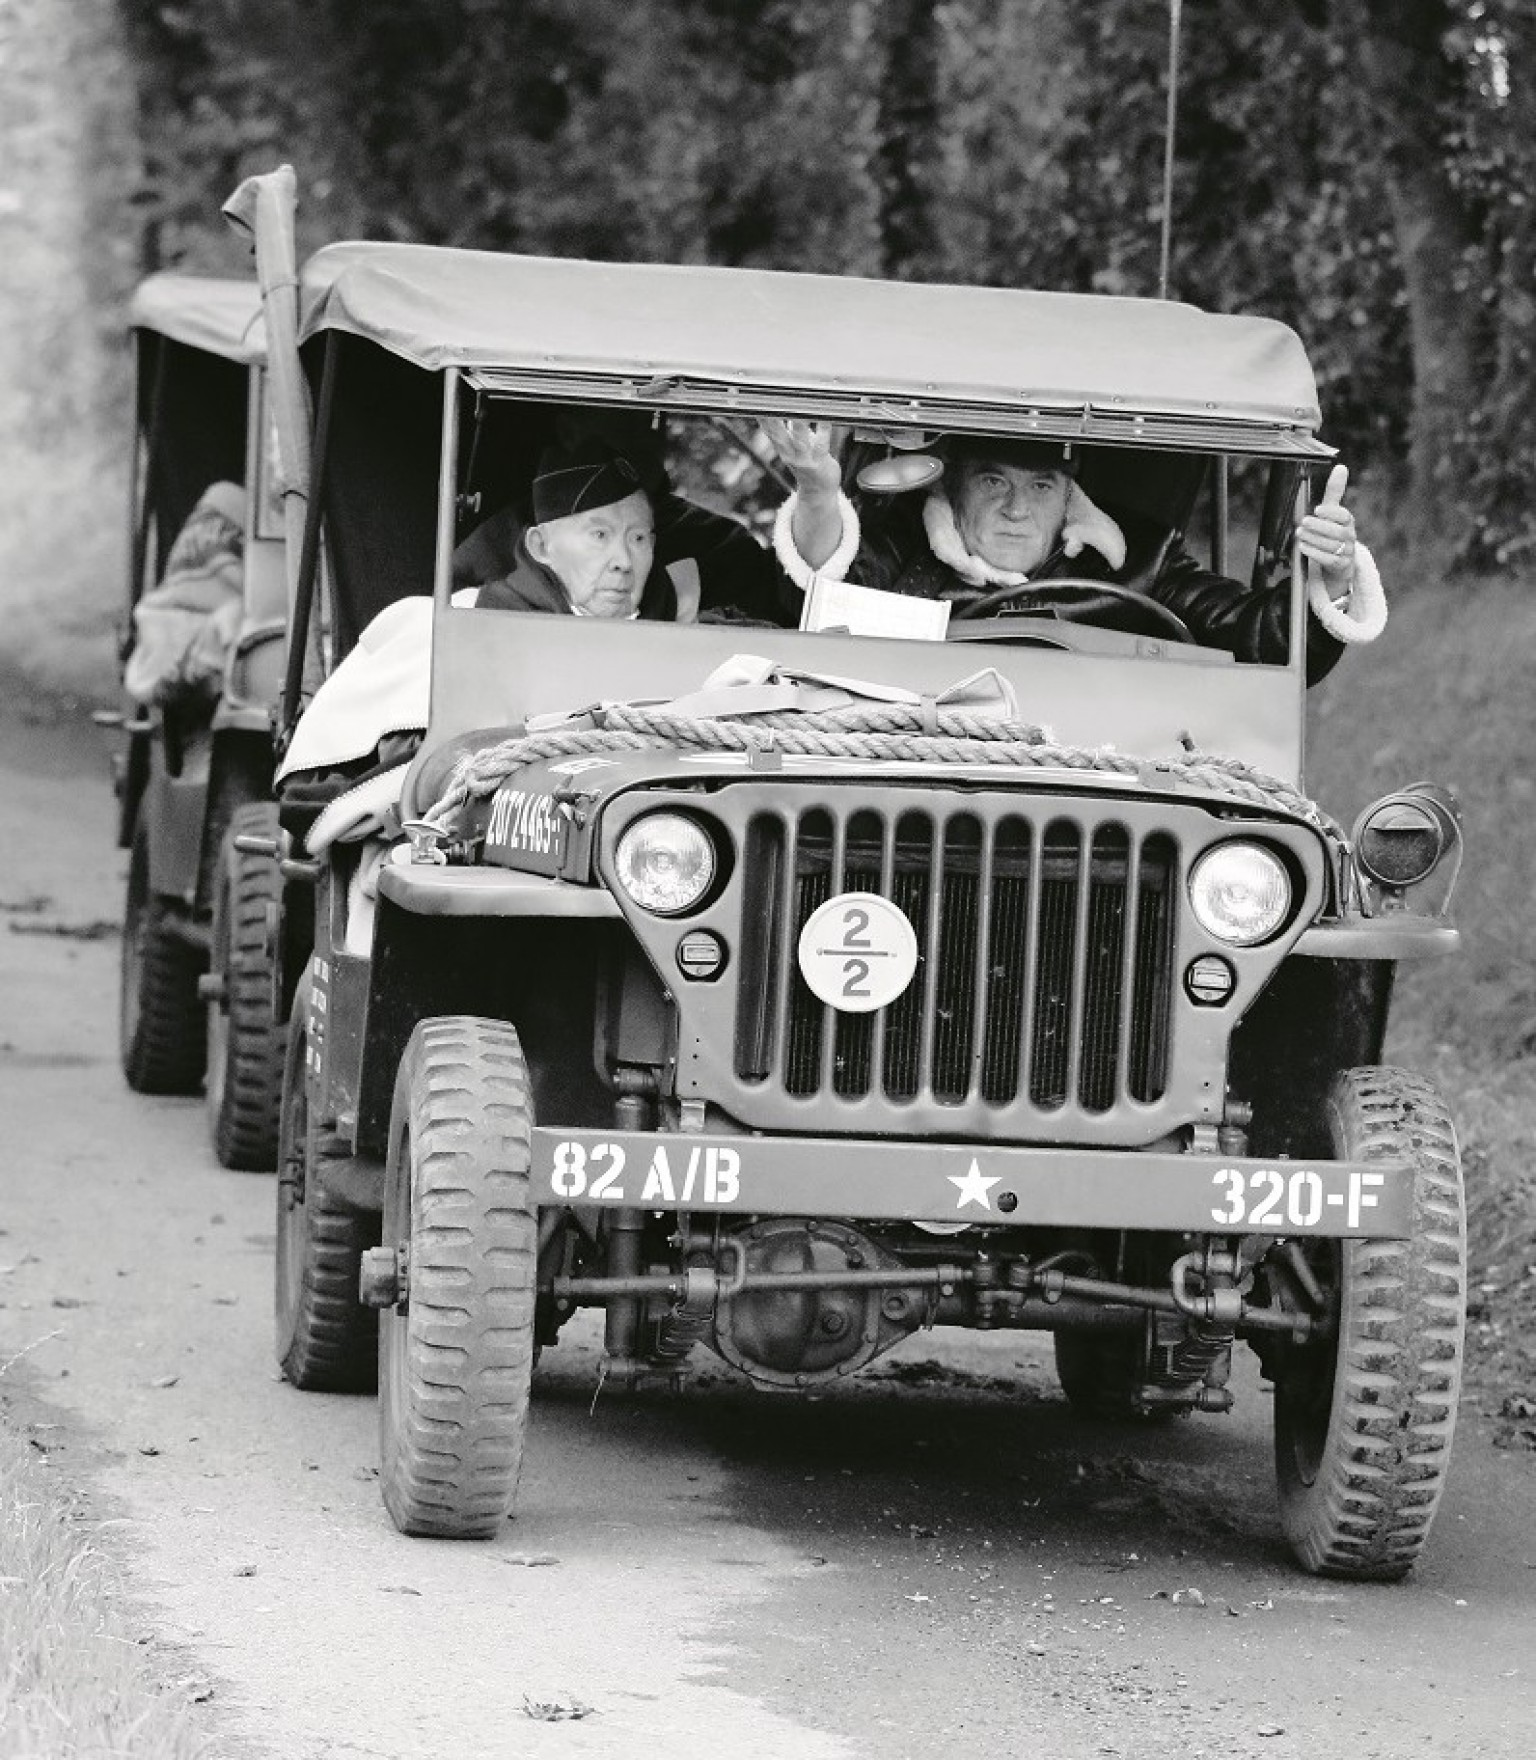 WWII-era Jeeps in Normandy